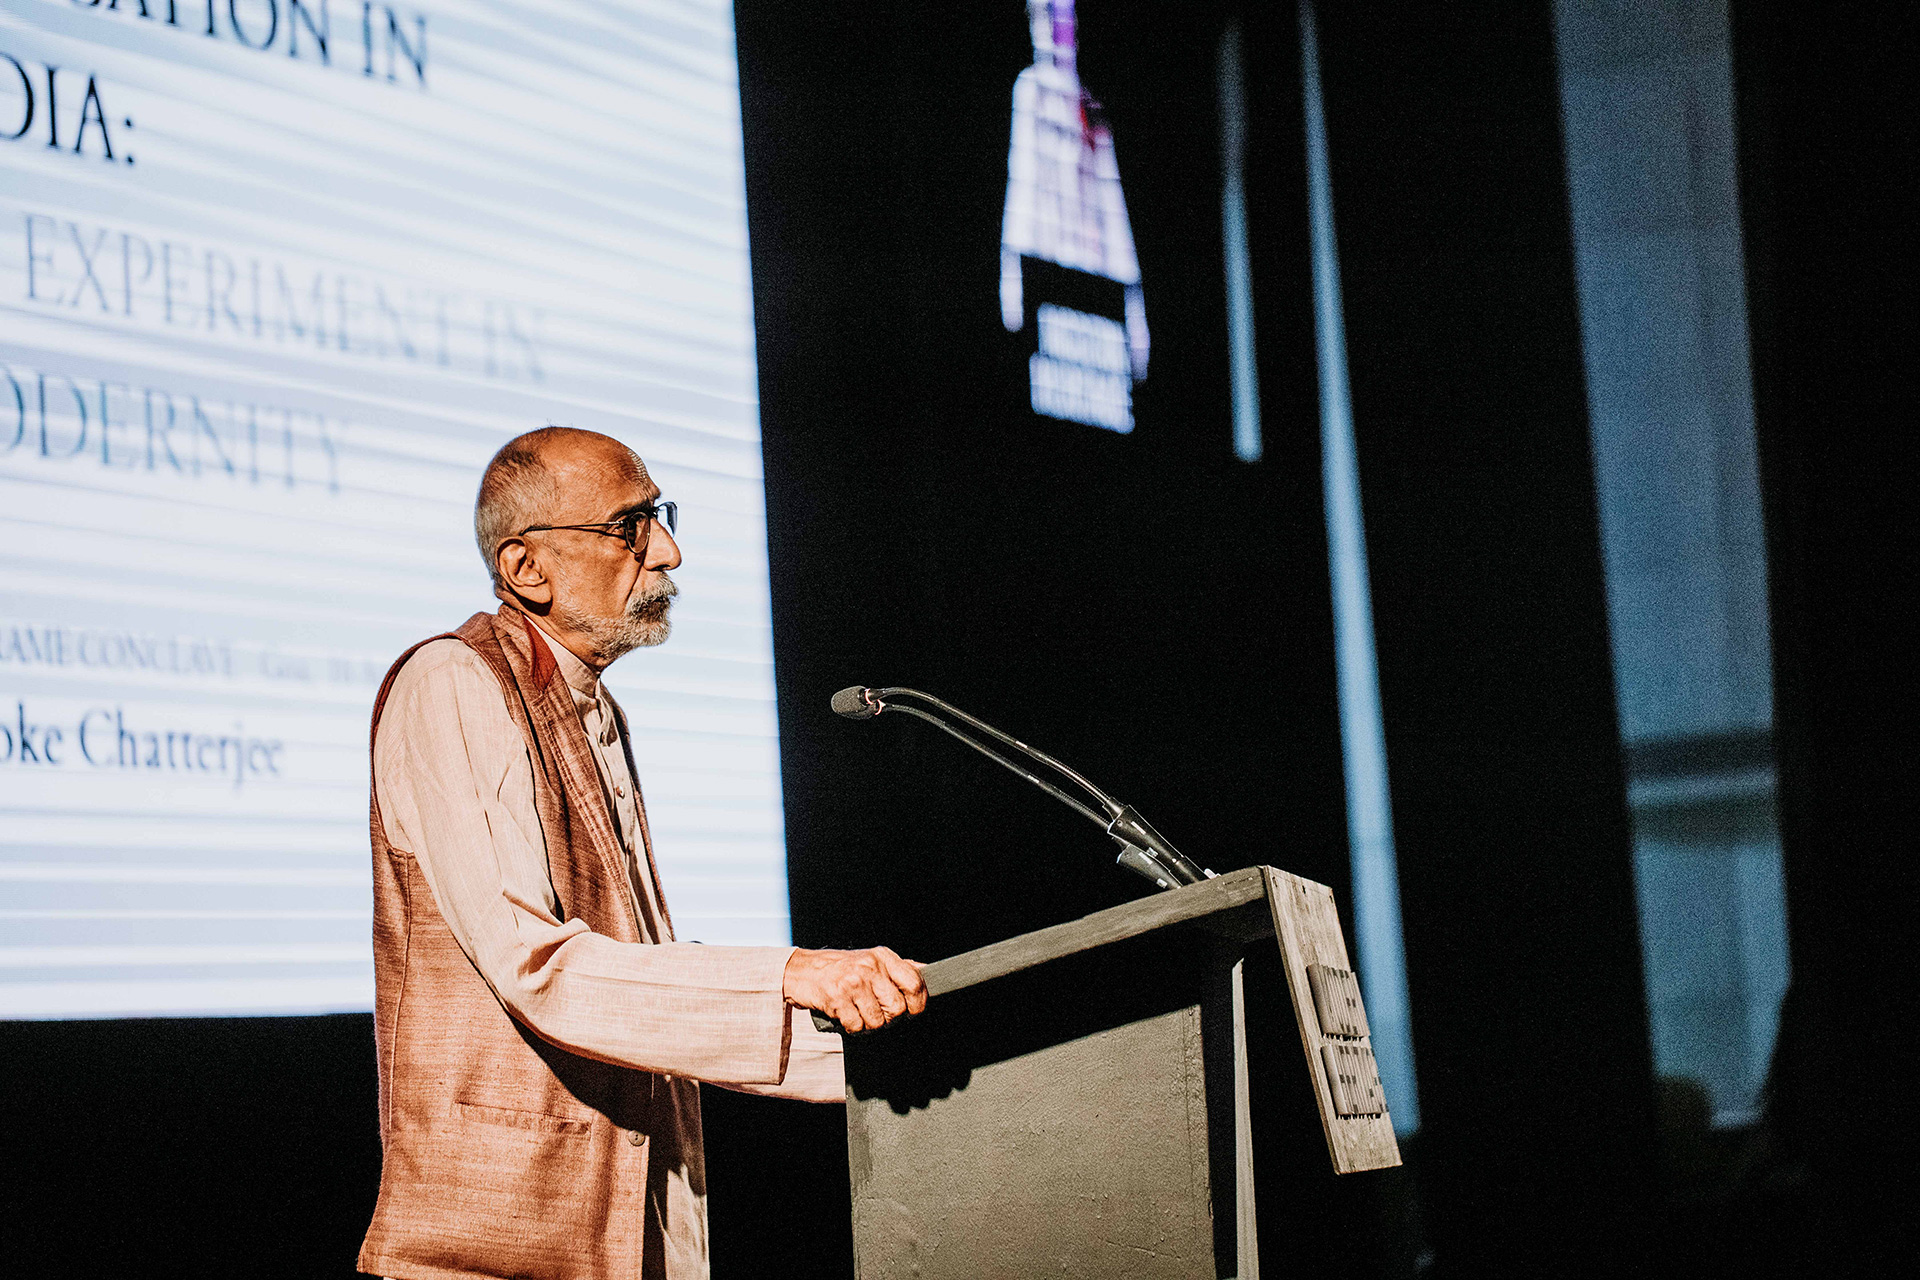 Ashoke Chatterjee on 'Design Education in India' | Frame Conference | India | STIR